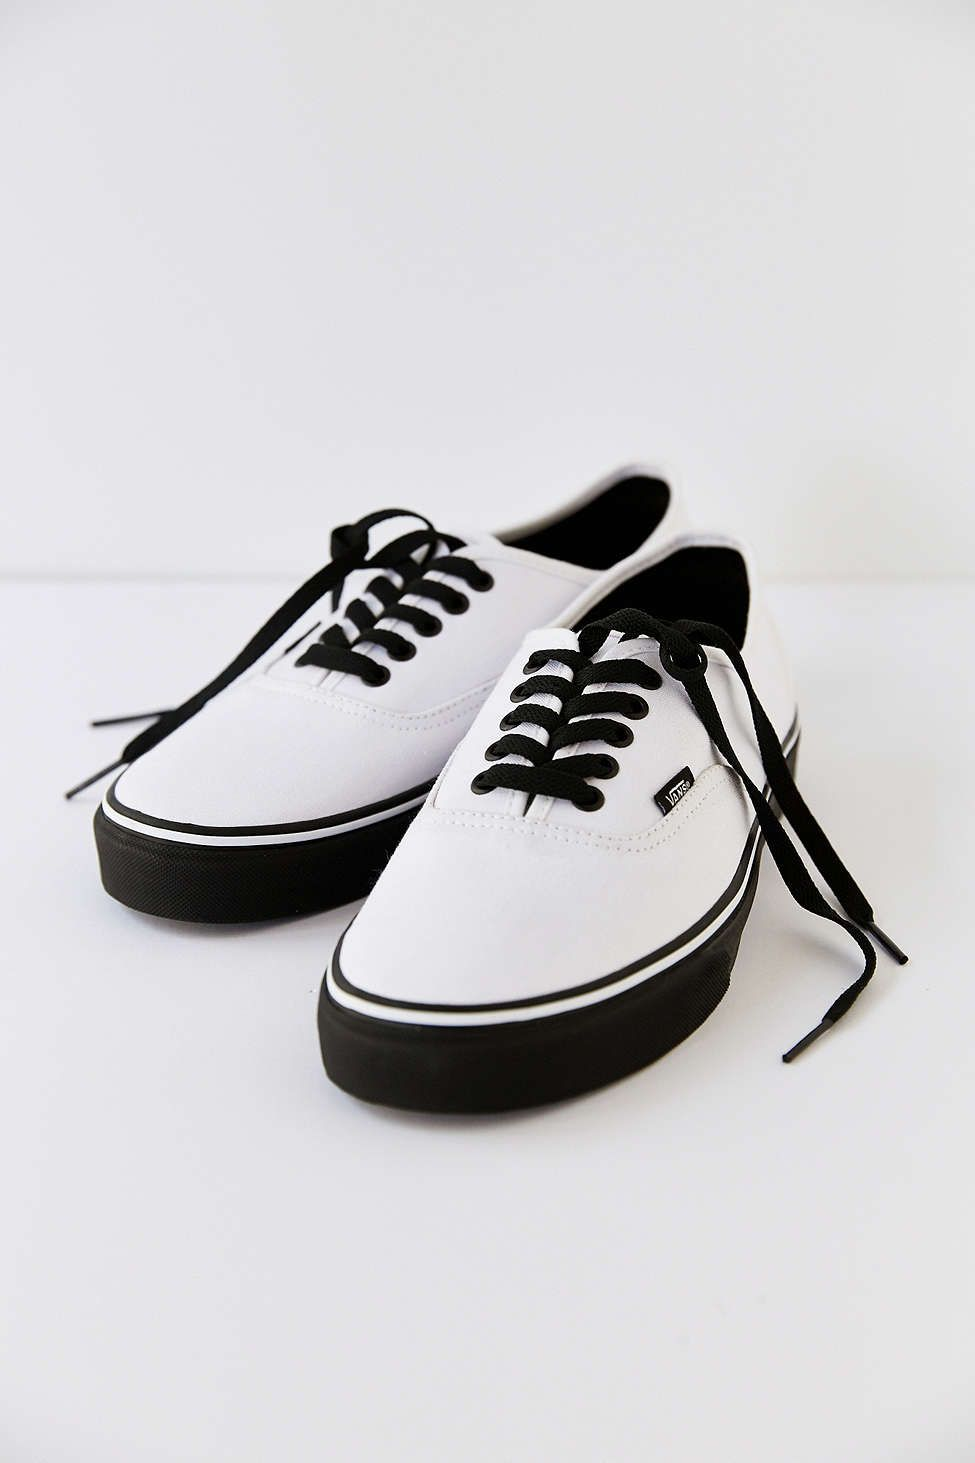 914e208e5102 Vans Authentic Black Sole Men s Sneaker